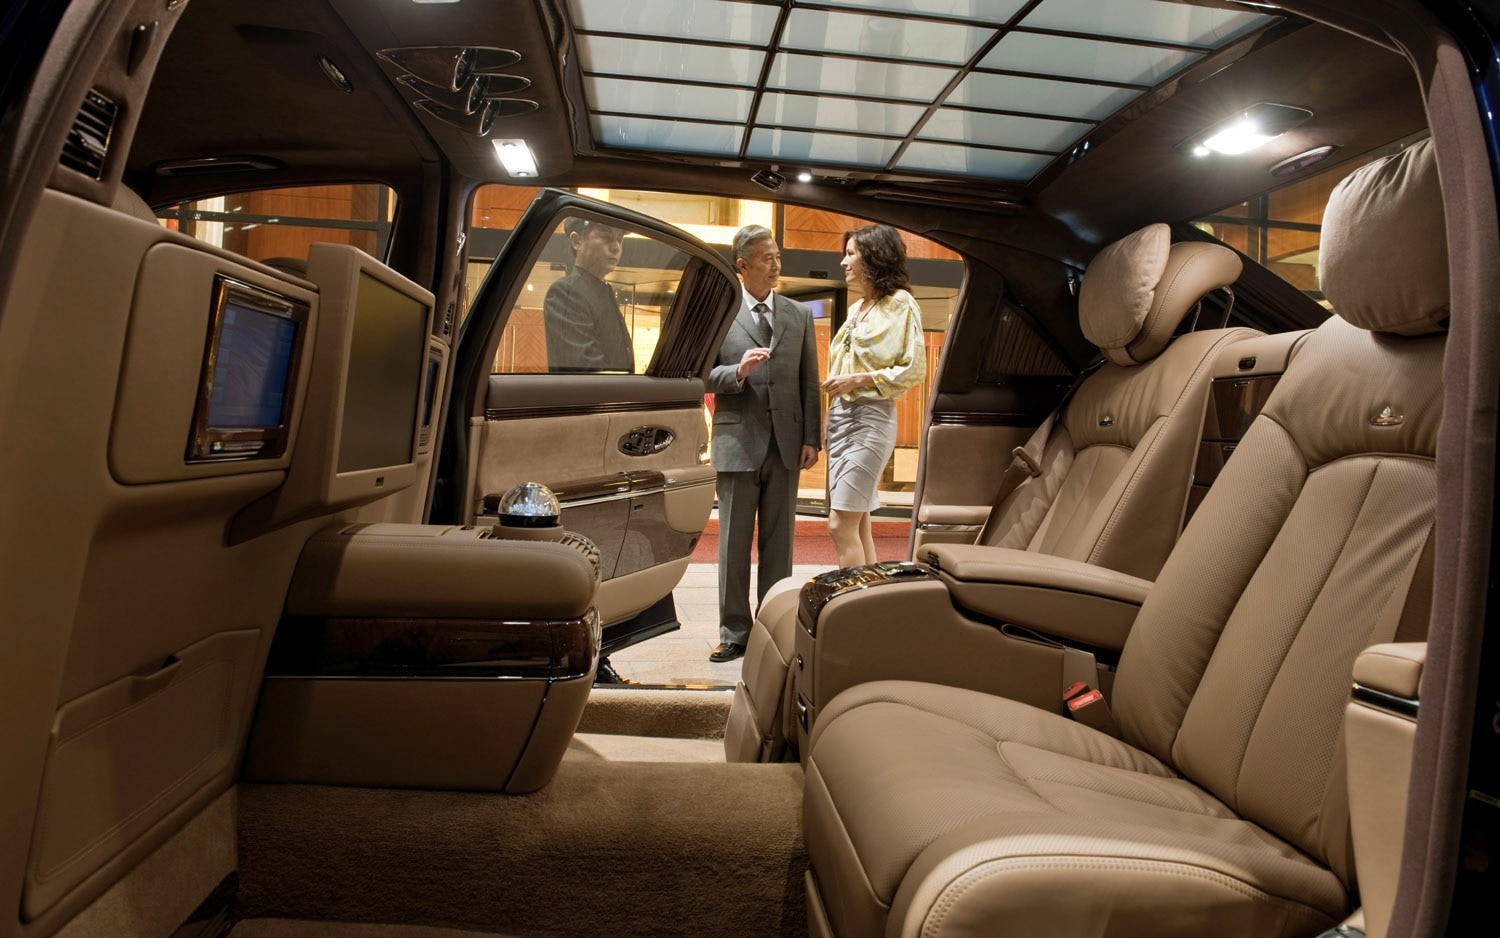 daimler finally kills maybach will replace with stretched mercedes benz s class. Black Bedroom Furniture Sets. Home Design Ideas